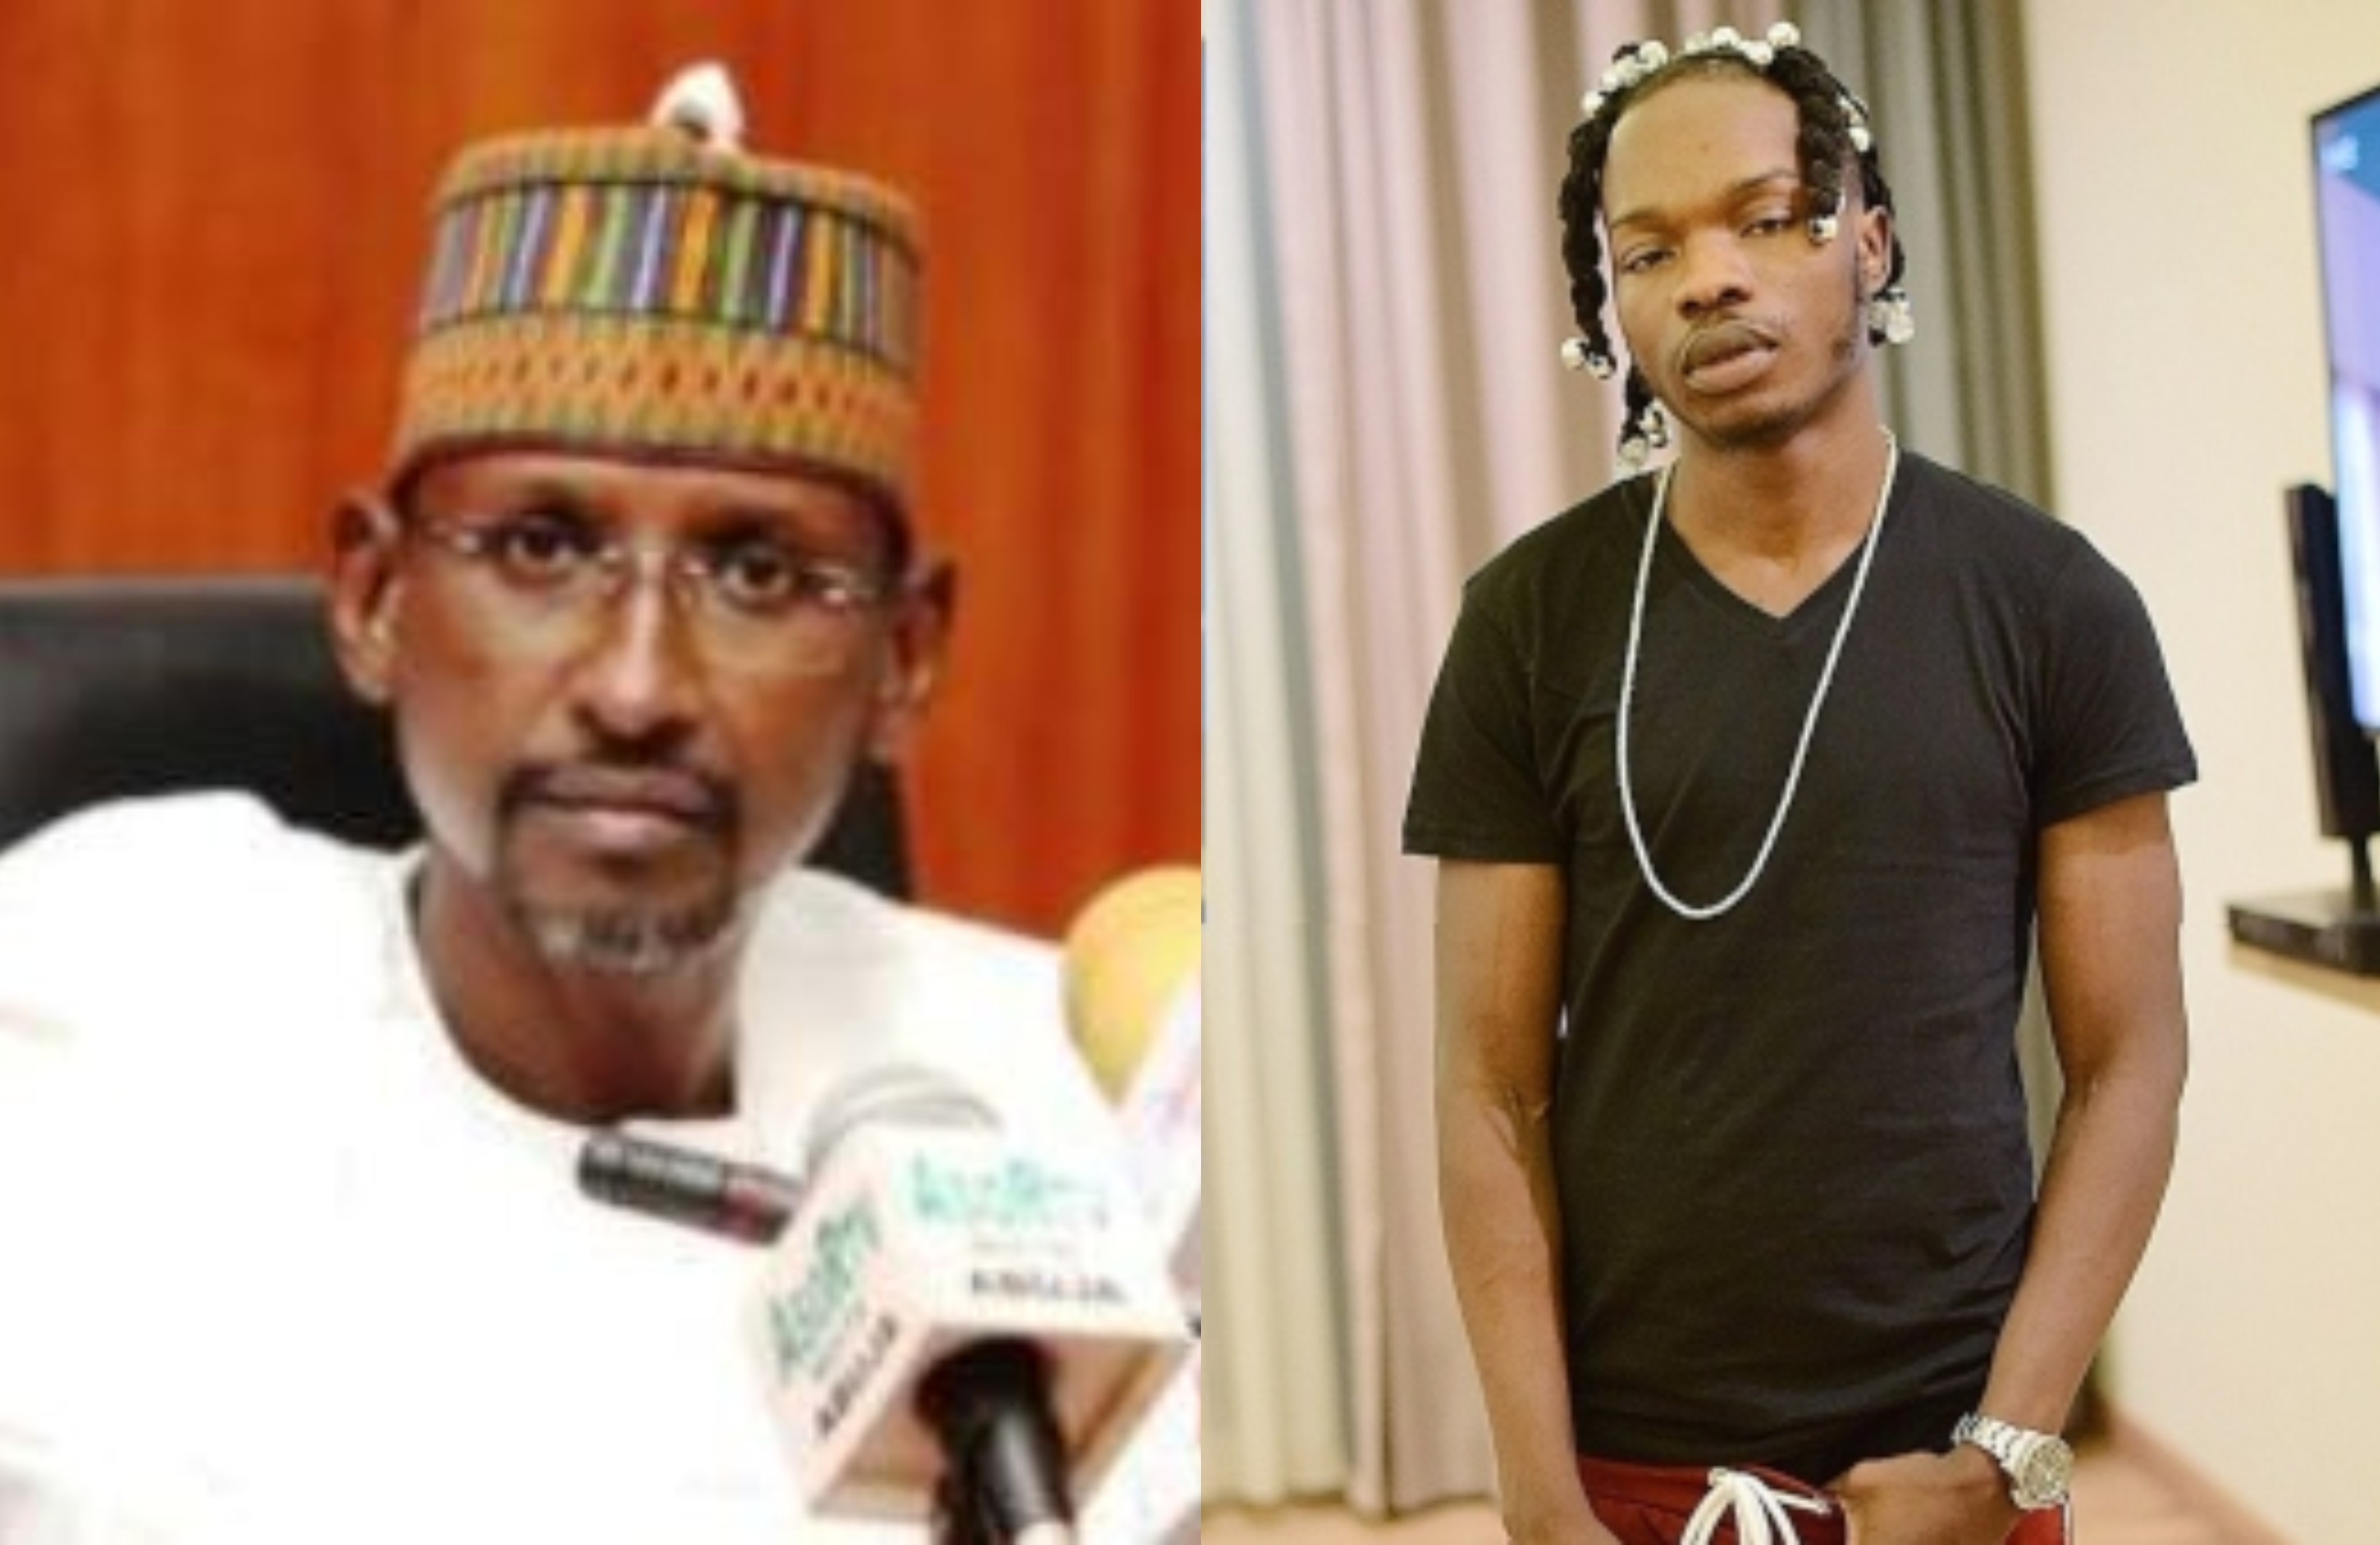 FCT minister to prosecute Naira Marley and others over concert